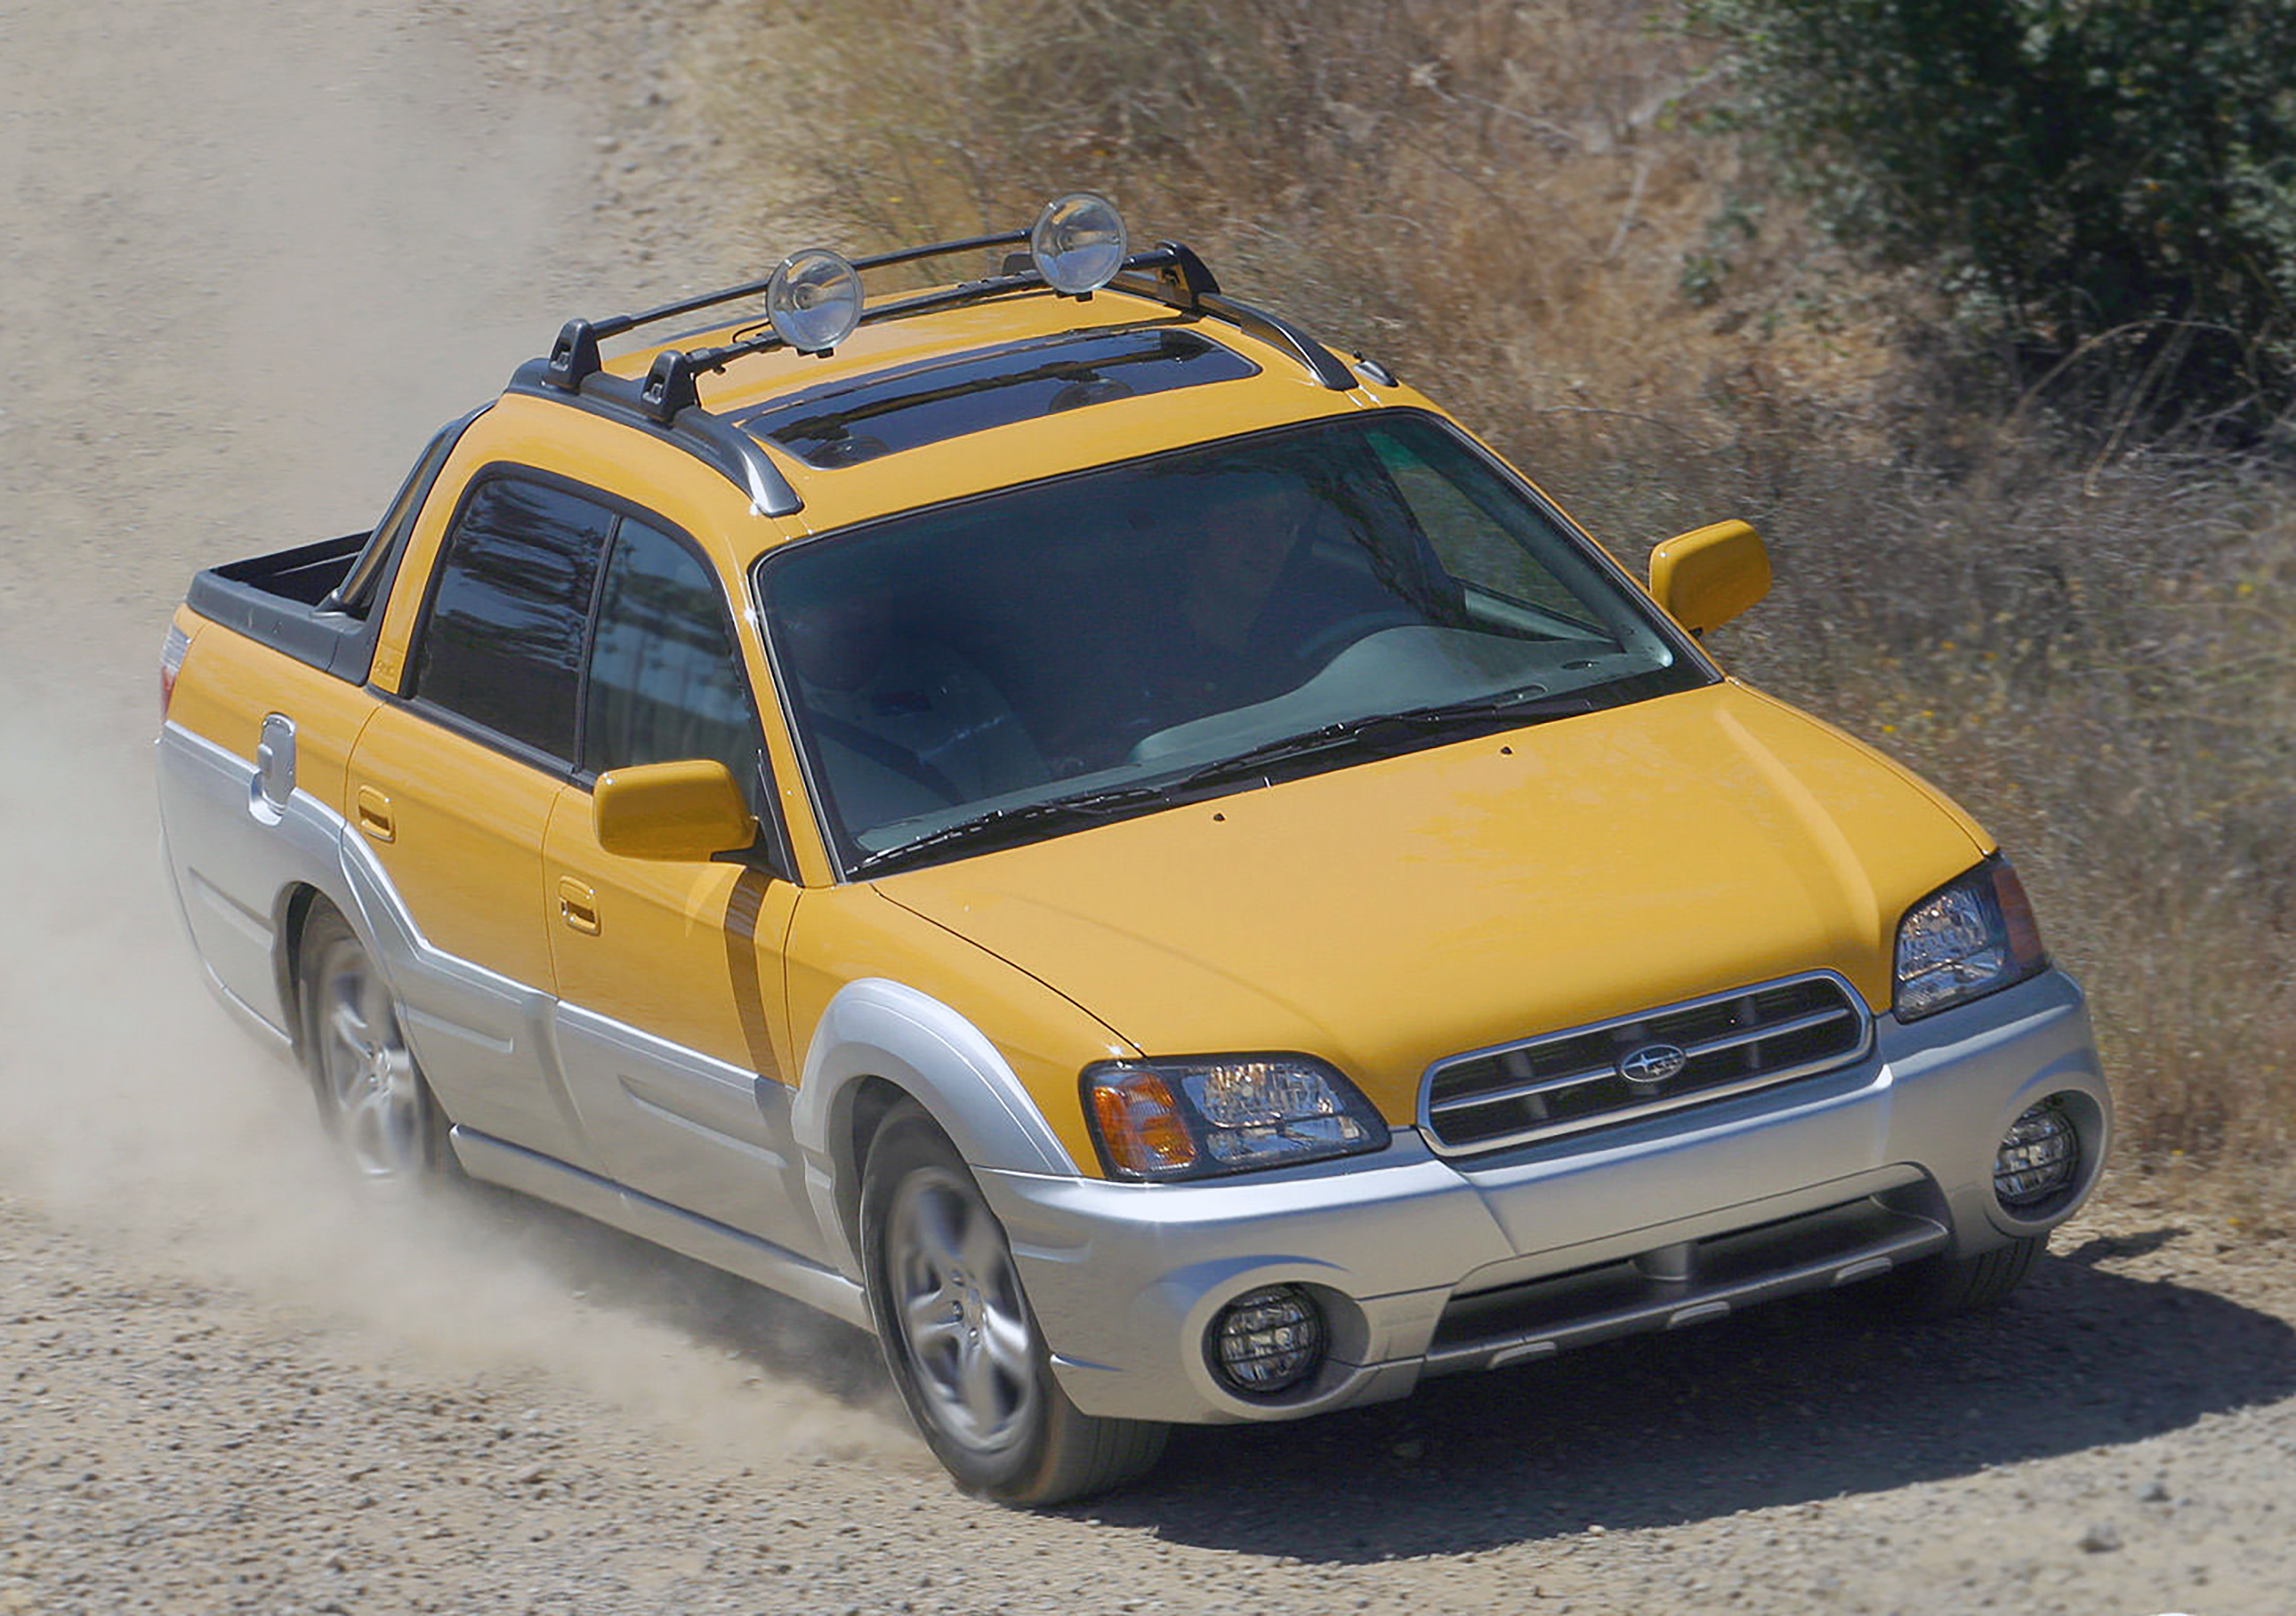 The Subaru brand has long been associated with motorsport and in particular rally a motorsport that highlights the Subaru Symmetrical All-Wheel Drive ... & SUBARU OF AMERICA 50TH ANNIVERSARY - myAutoWorld.com